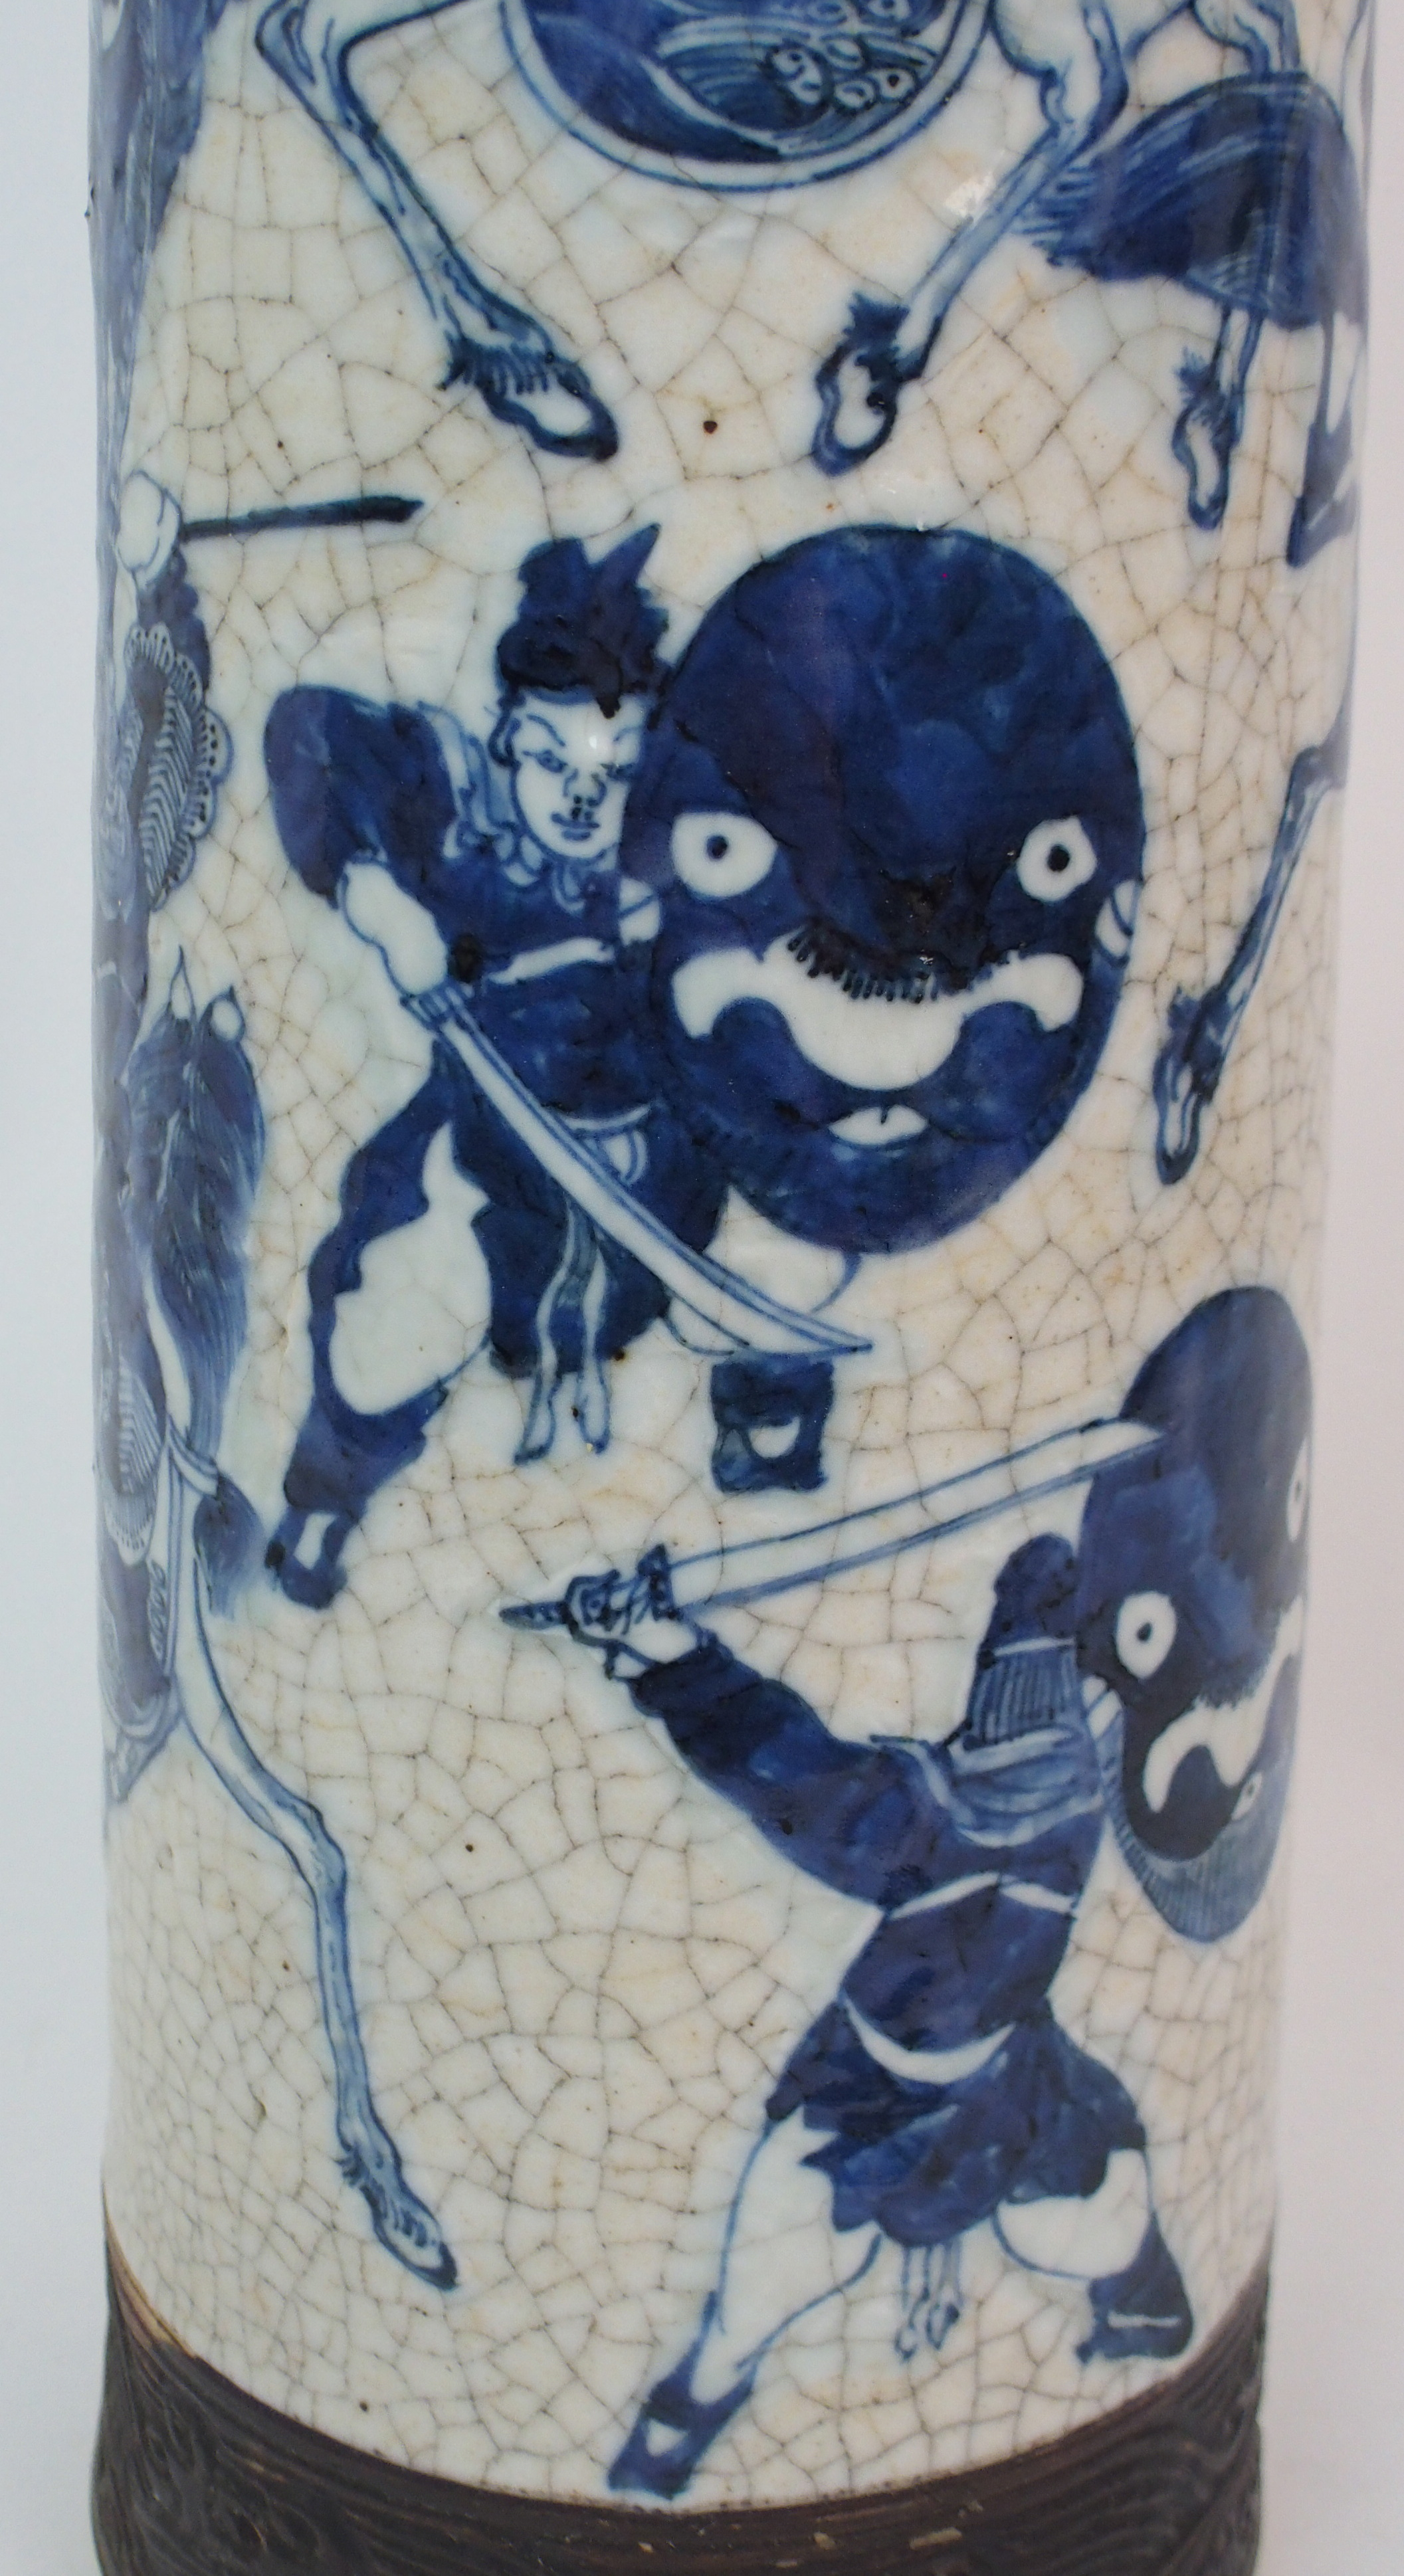 Lot 27 - A CHINESE CRACKLEWARE RELIEF MOULDED VASE painted with warriors within bronzed coloured bands,